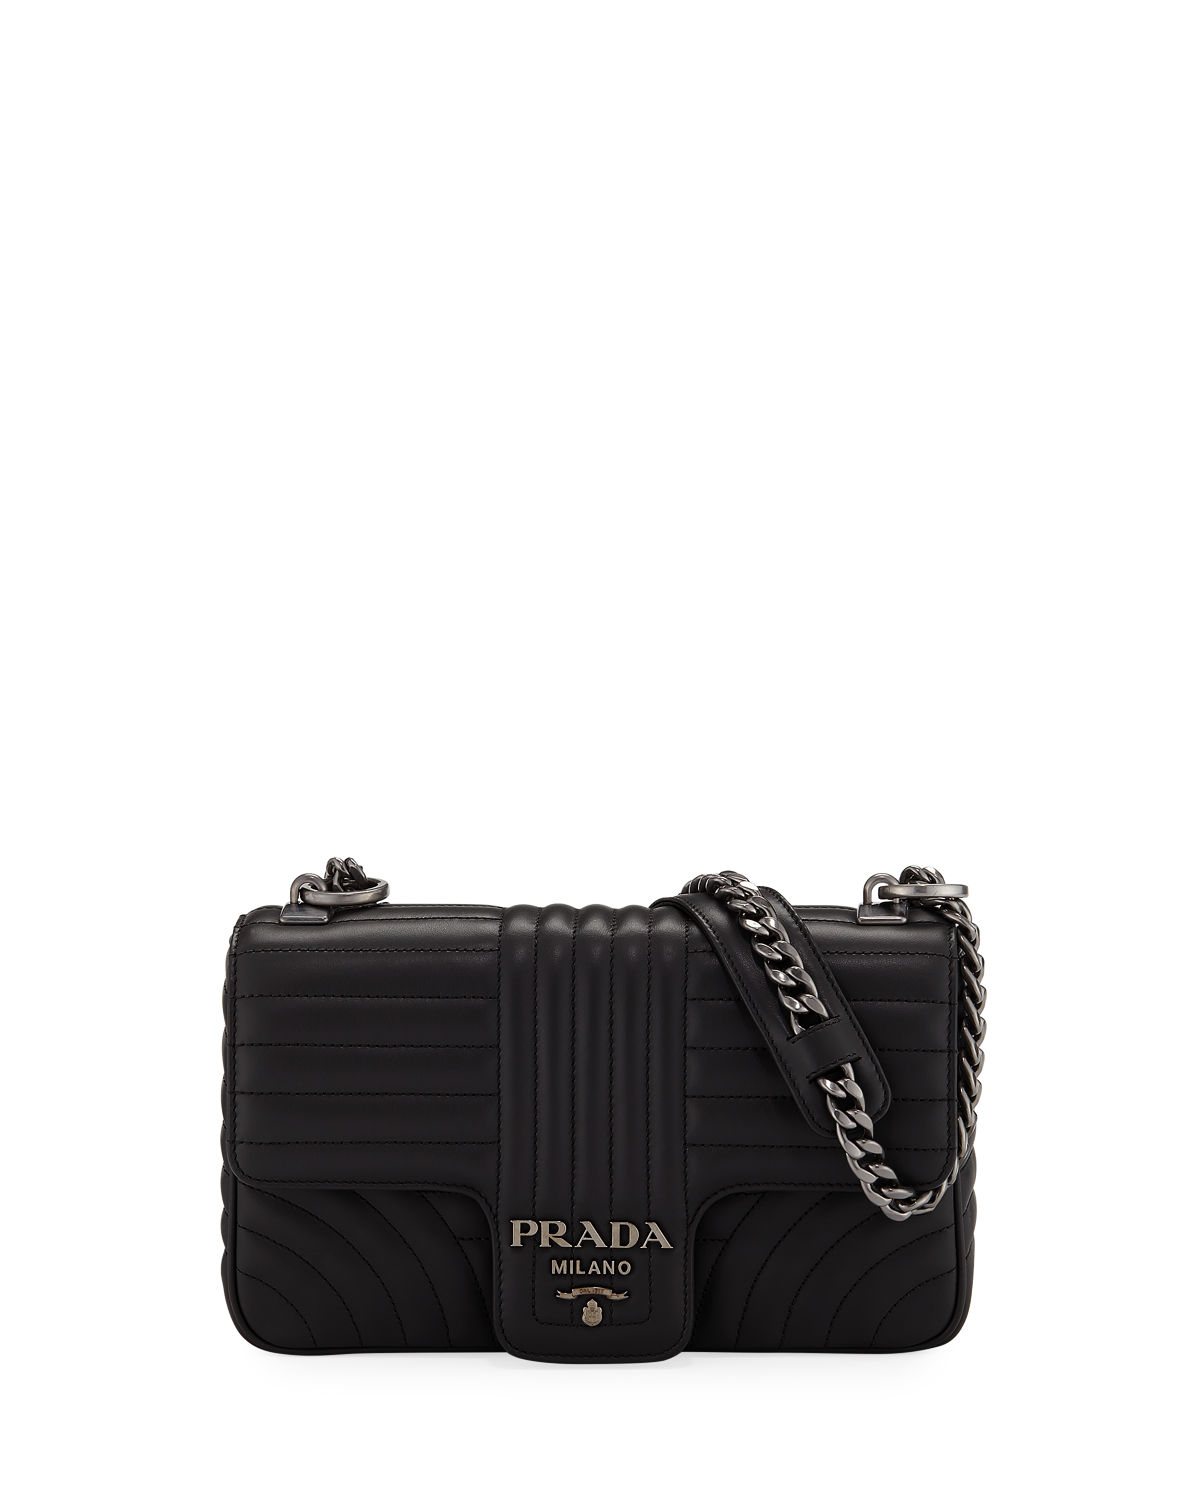 c342ffa55e64 Prada Diagramme Medium Shoulder Bag | Neiman Marcus